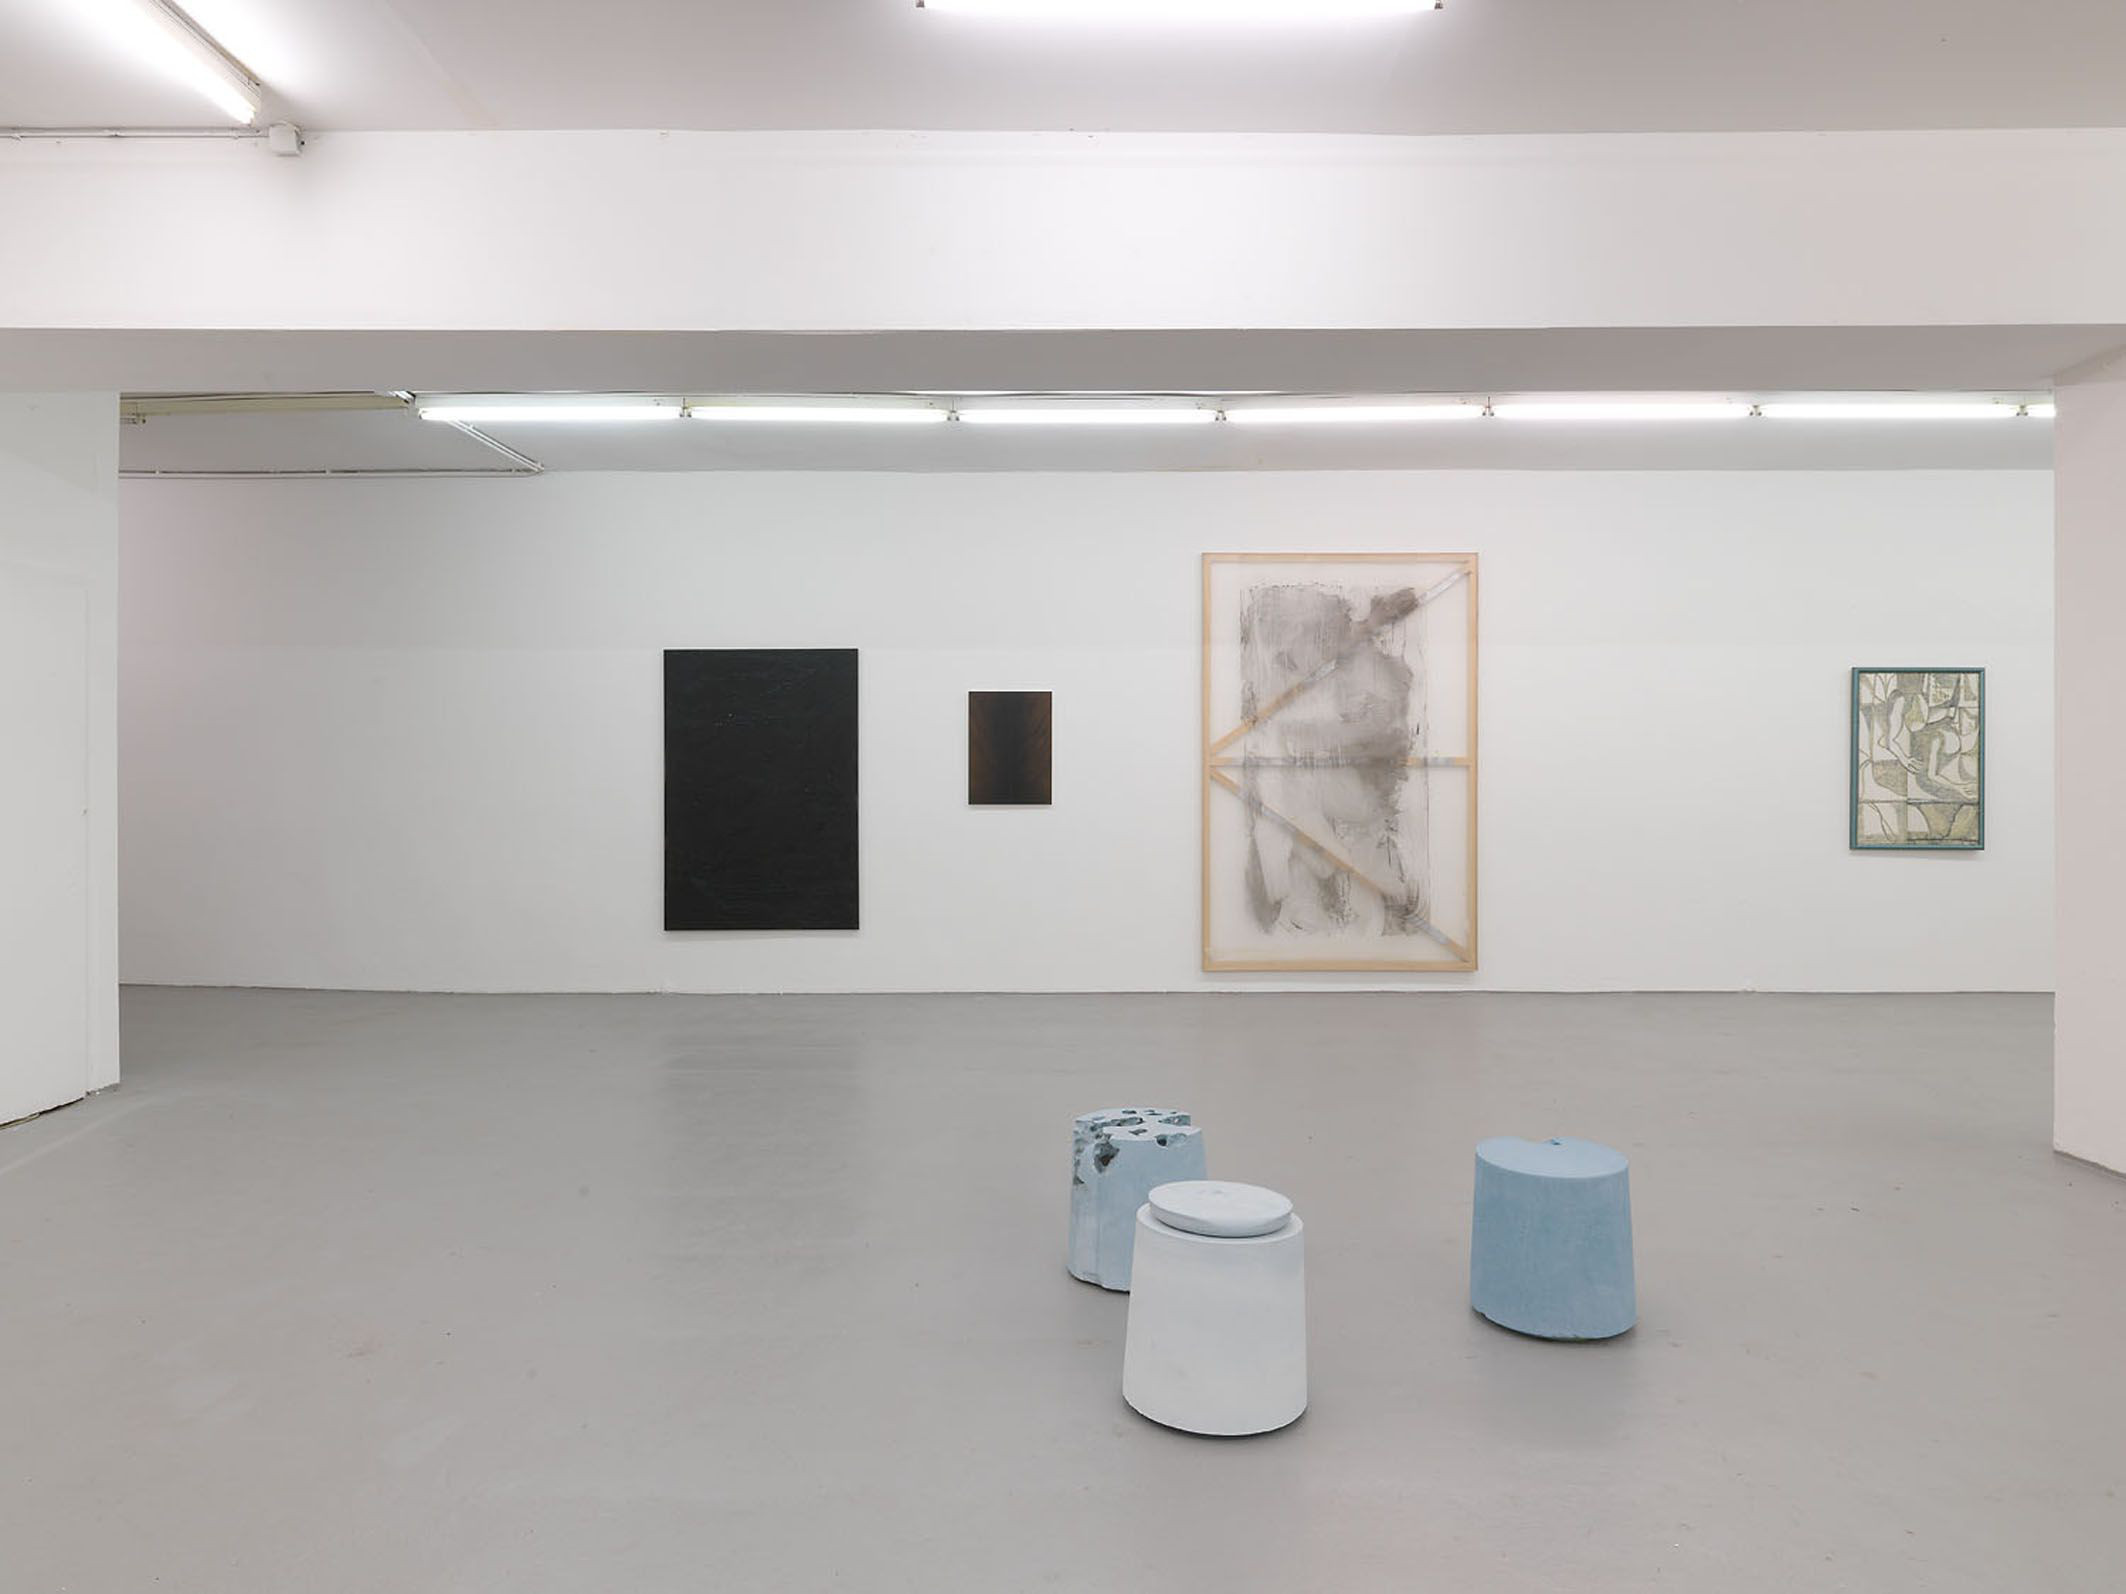 39_Volumes, 2015, exhibition view at Kunstverein Koelberg, with Berthold Pott, Koeln